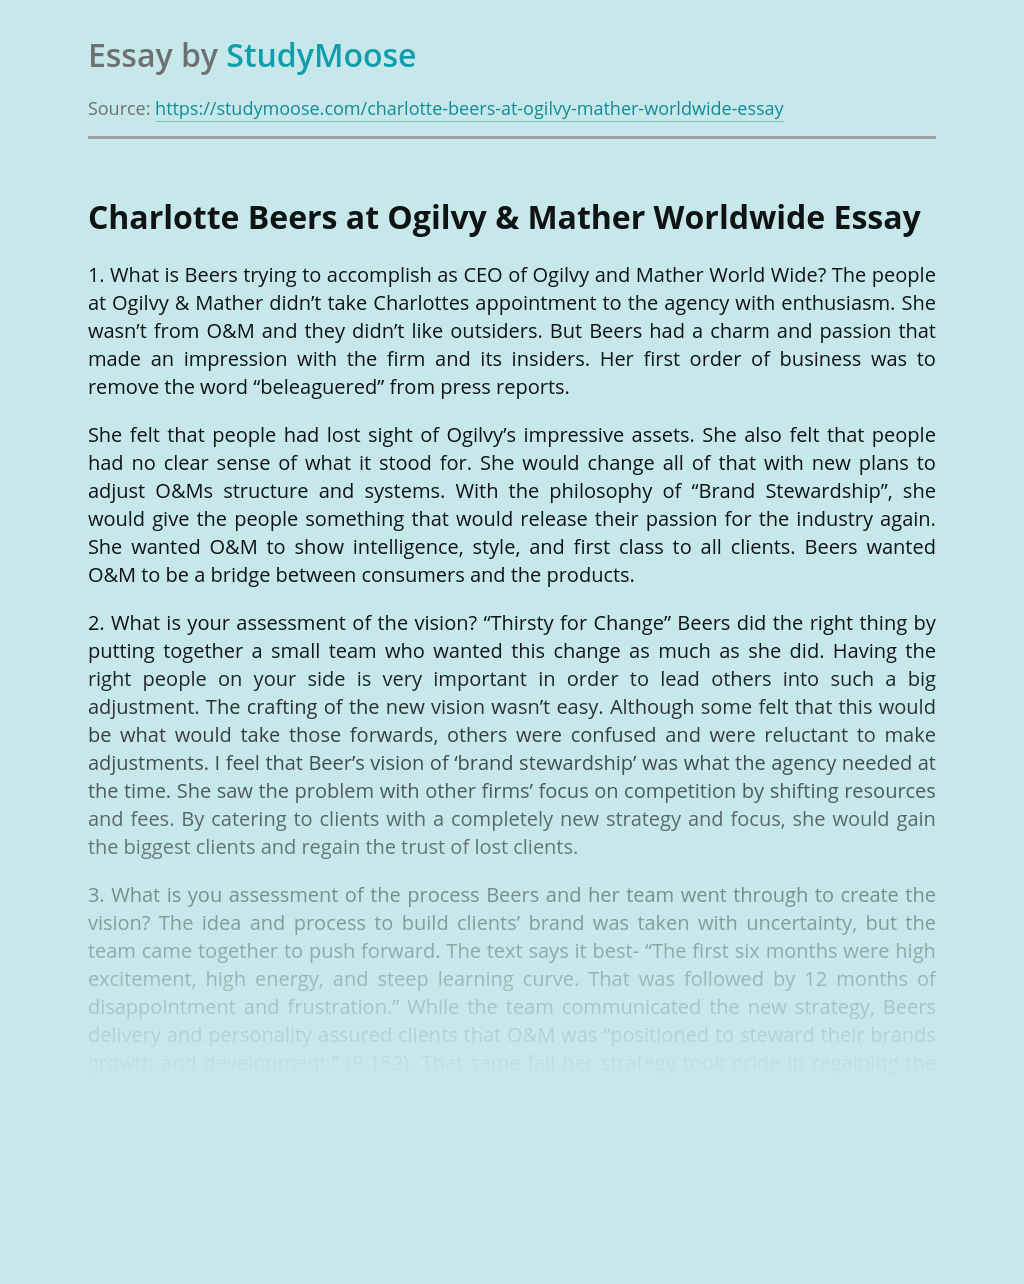 Charlotte Beers at Ogilvy & Mather Worldwide